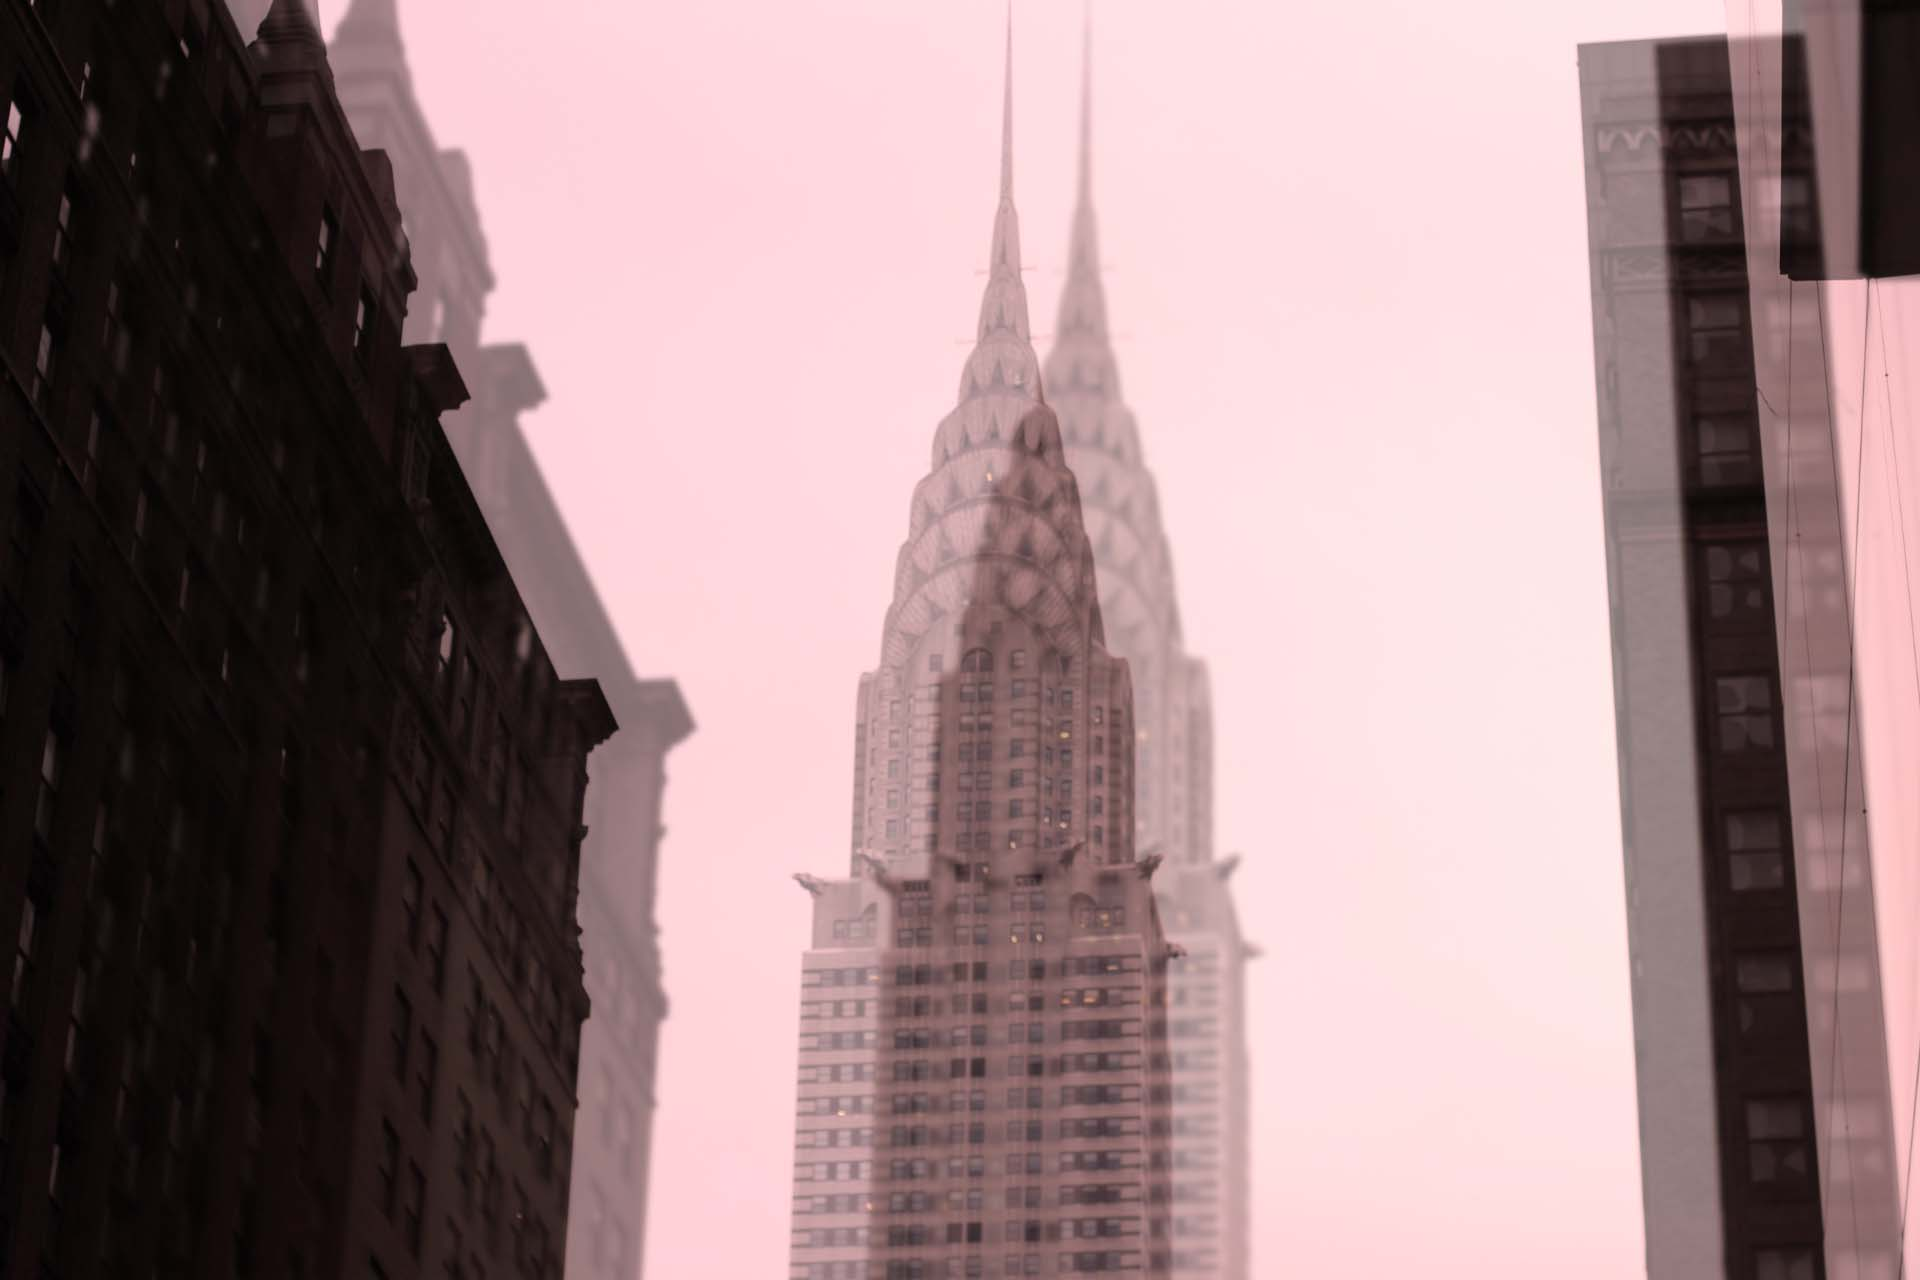 The Chrysler Building from below.